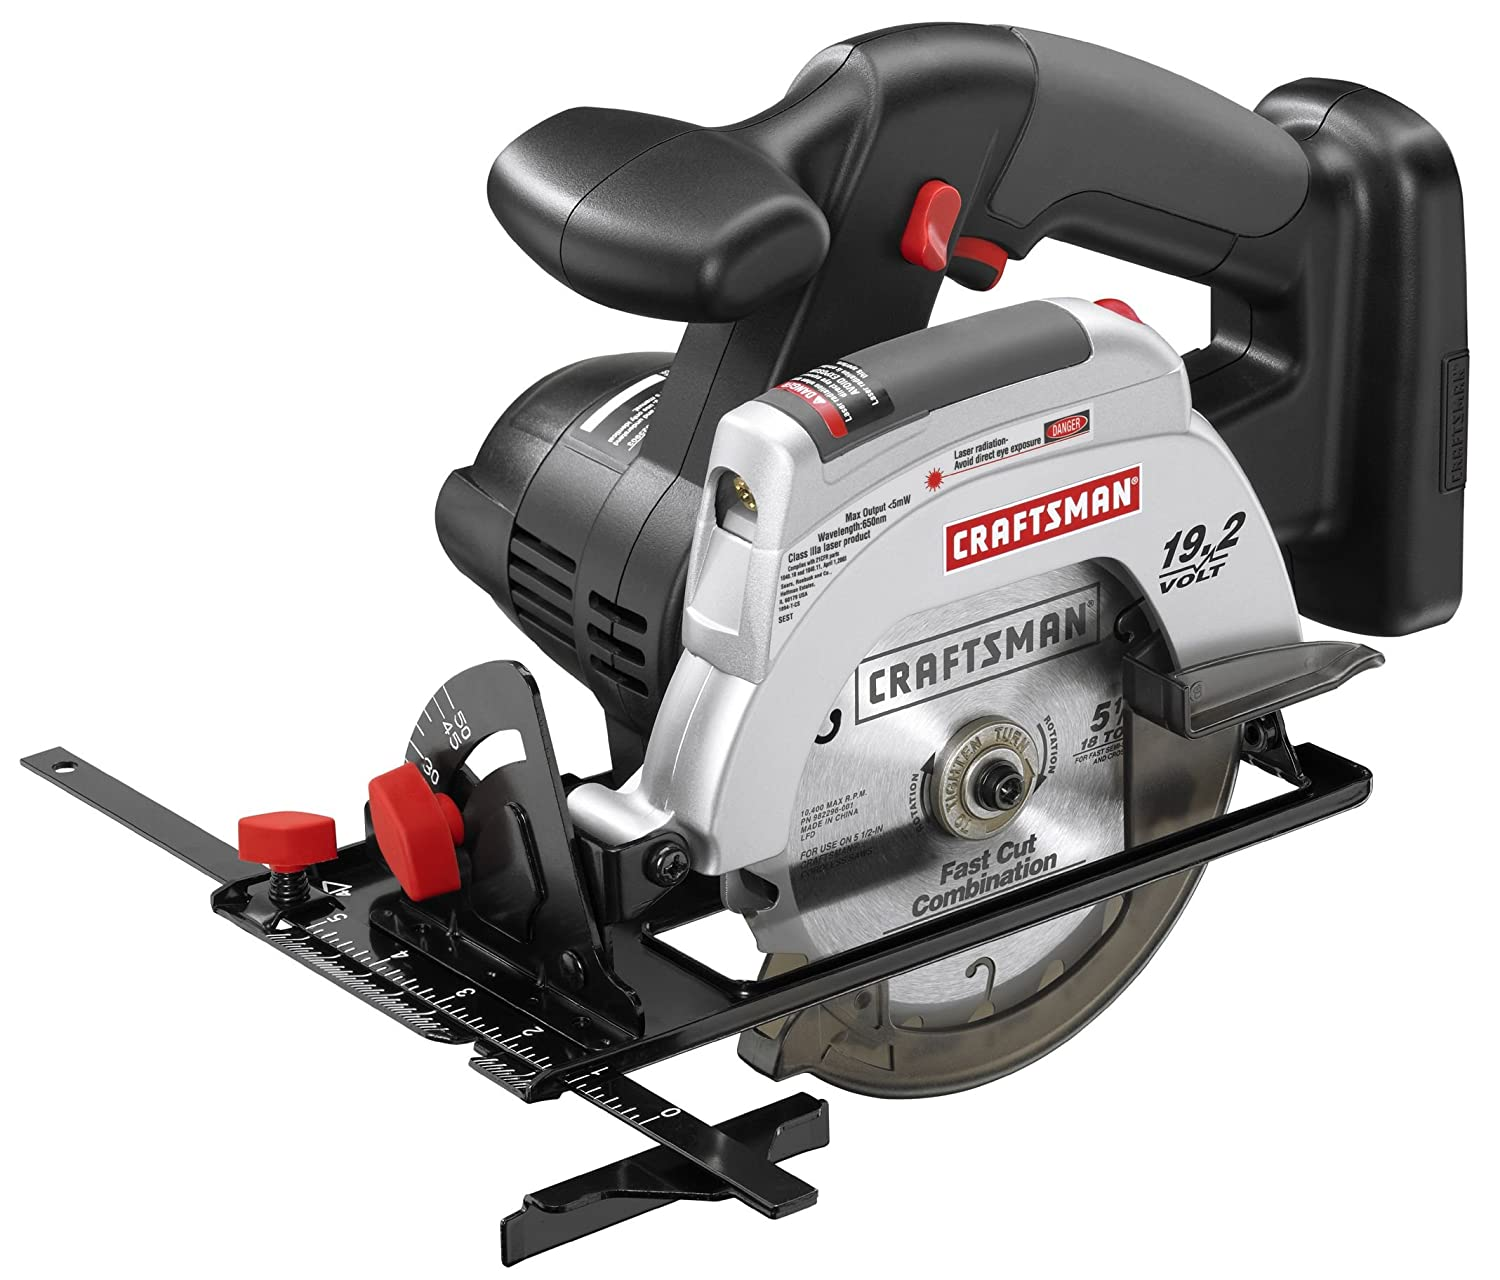 "Craftsman C3 19.2 Volt 5 1/2"" Cordless Circular Trim Saw (Tool Only - No  laser model) - Power Circular Saws - Amazon.com"